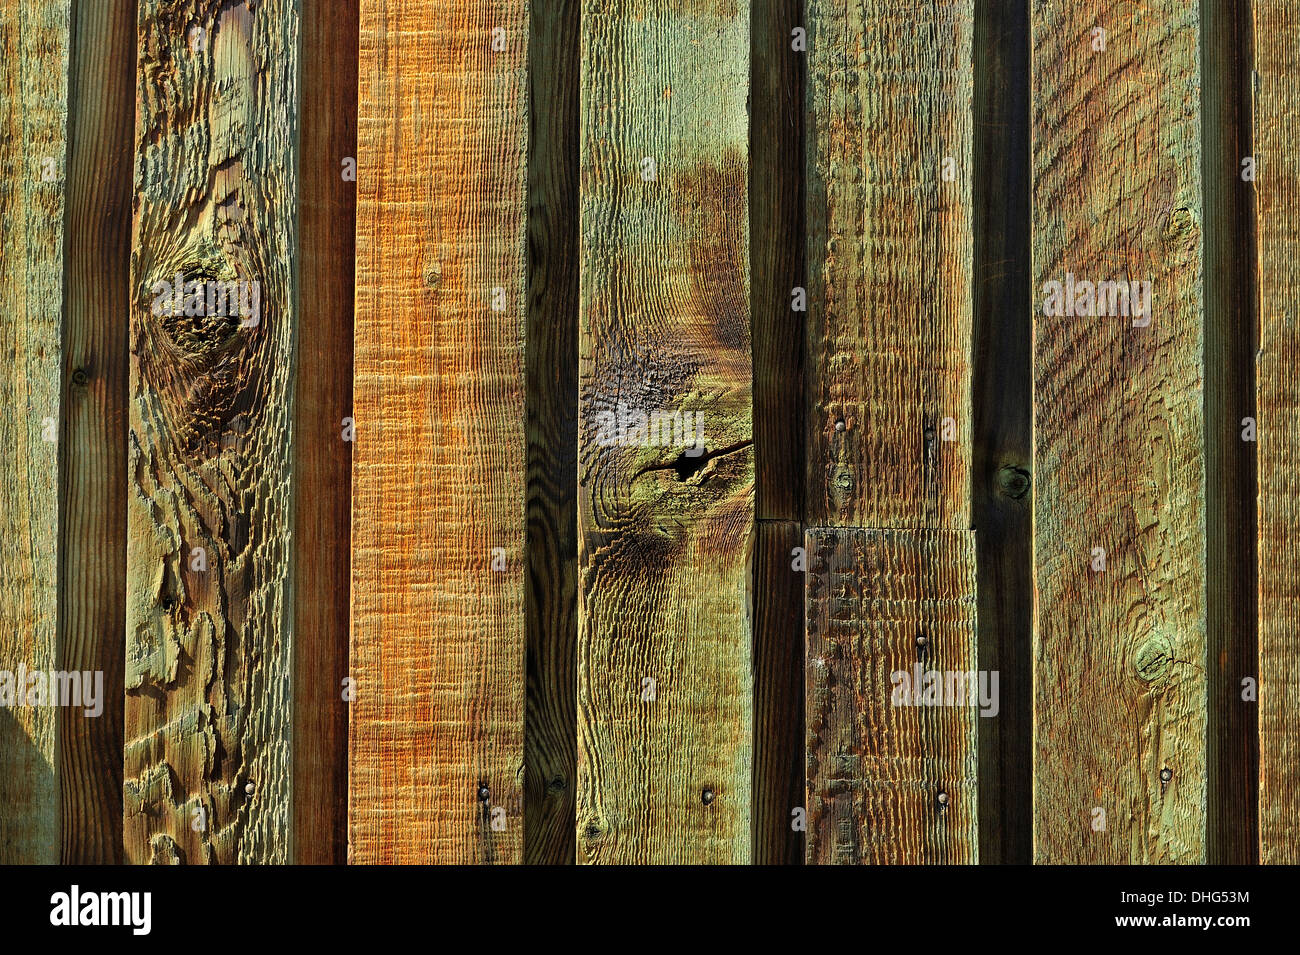 A section of cedar boards used as outdoor siding on a building - Stock Image